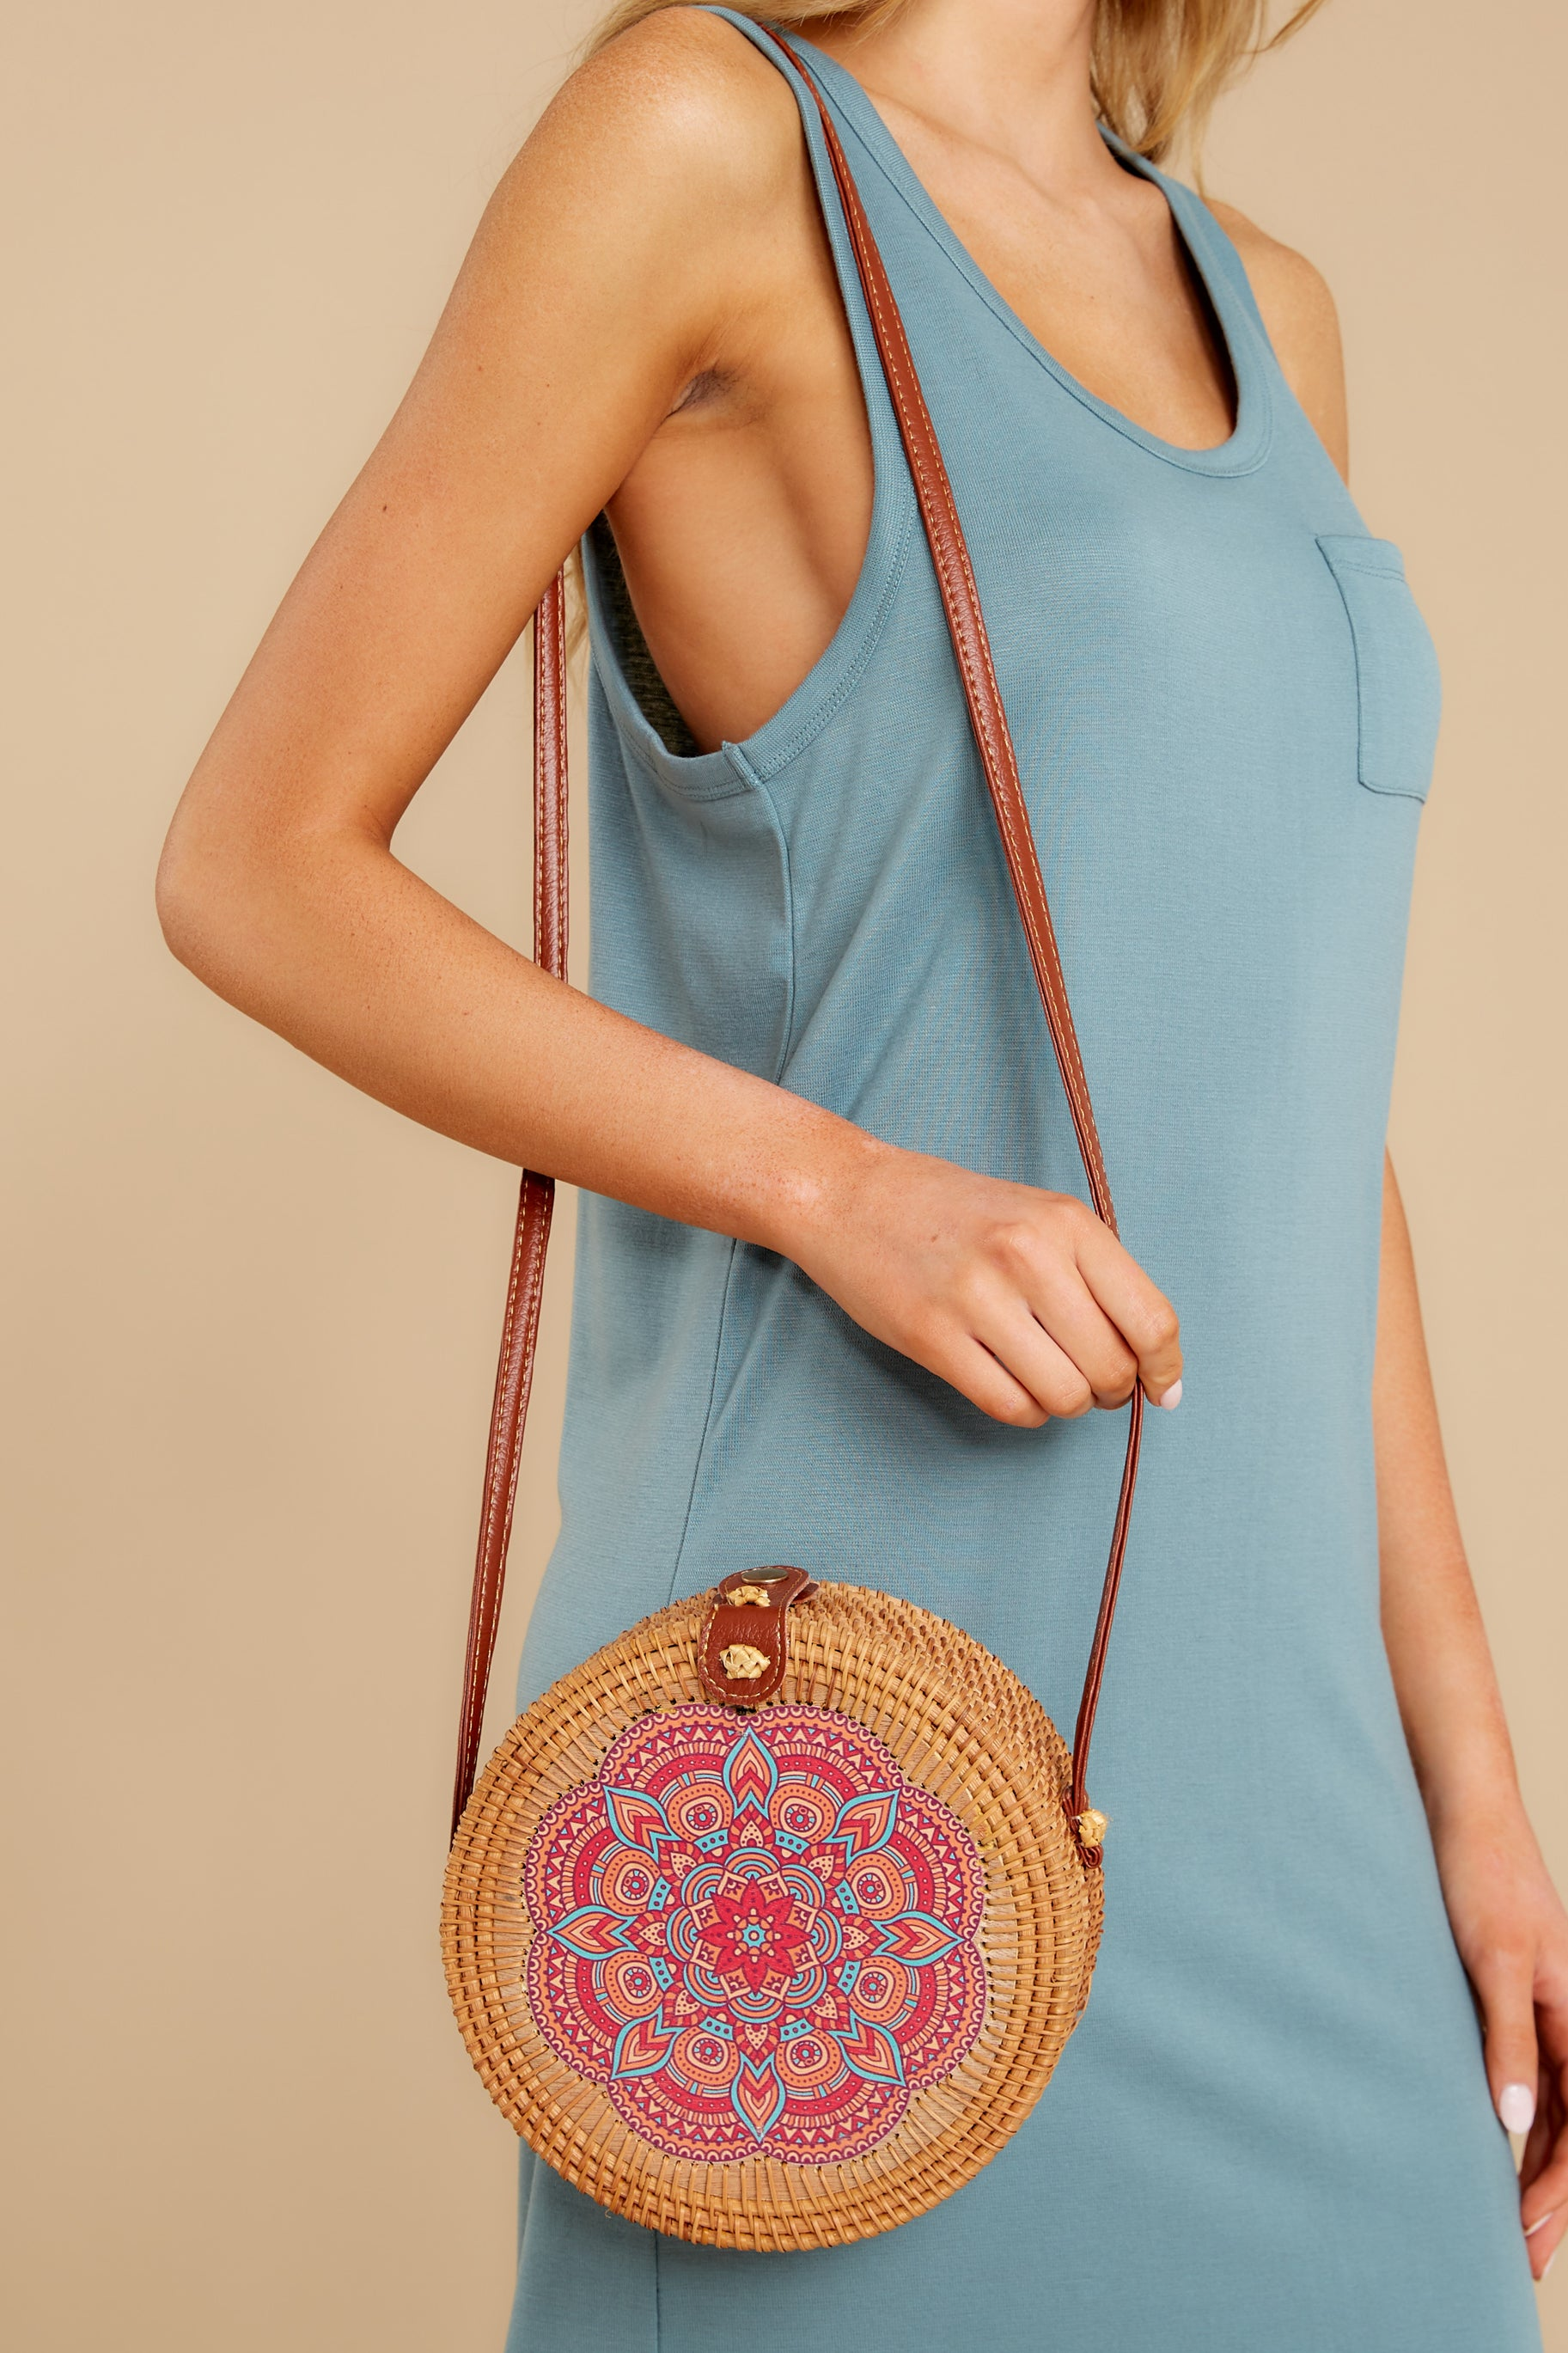 2 A Little Charmed Pink Printed Tan Round Bag at reddress.com